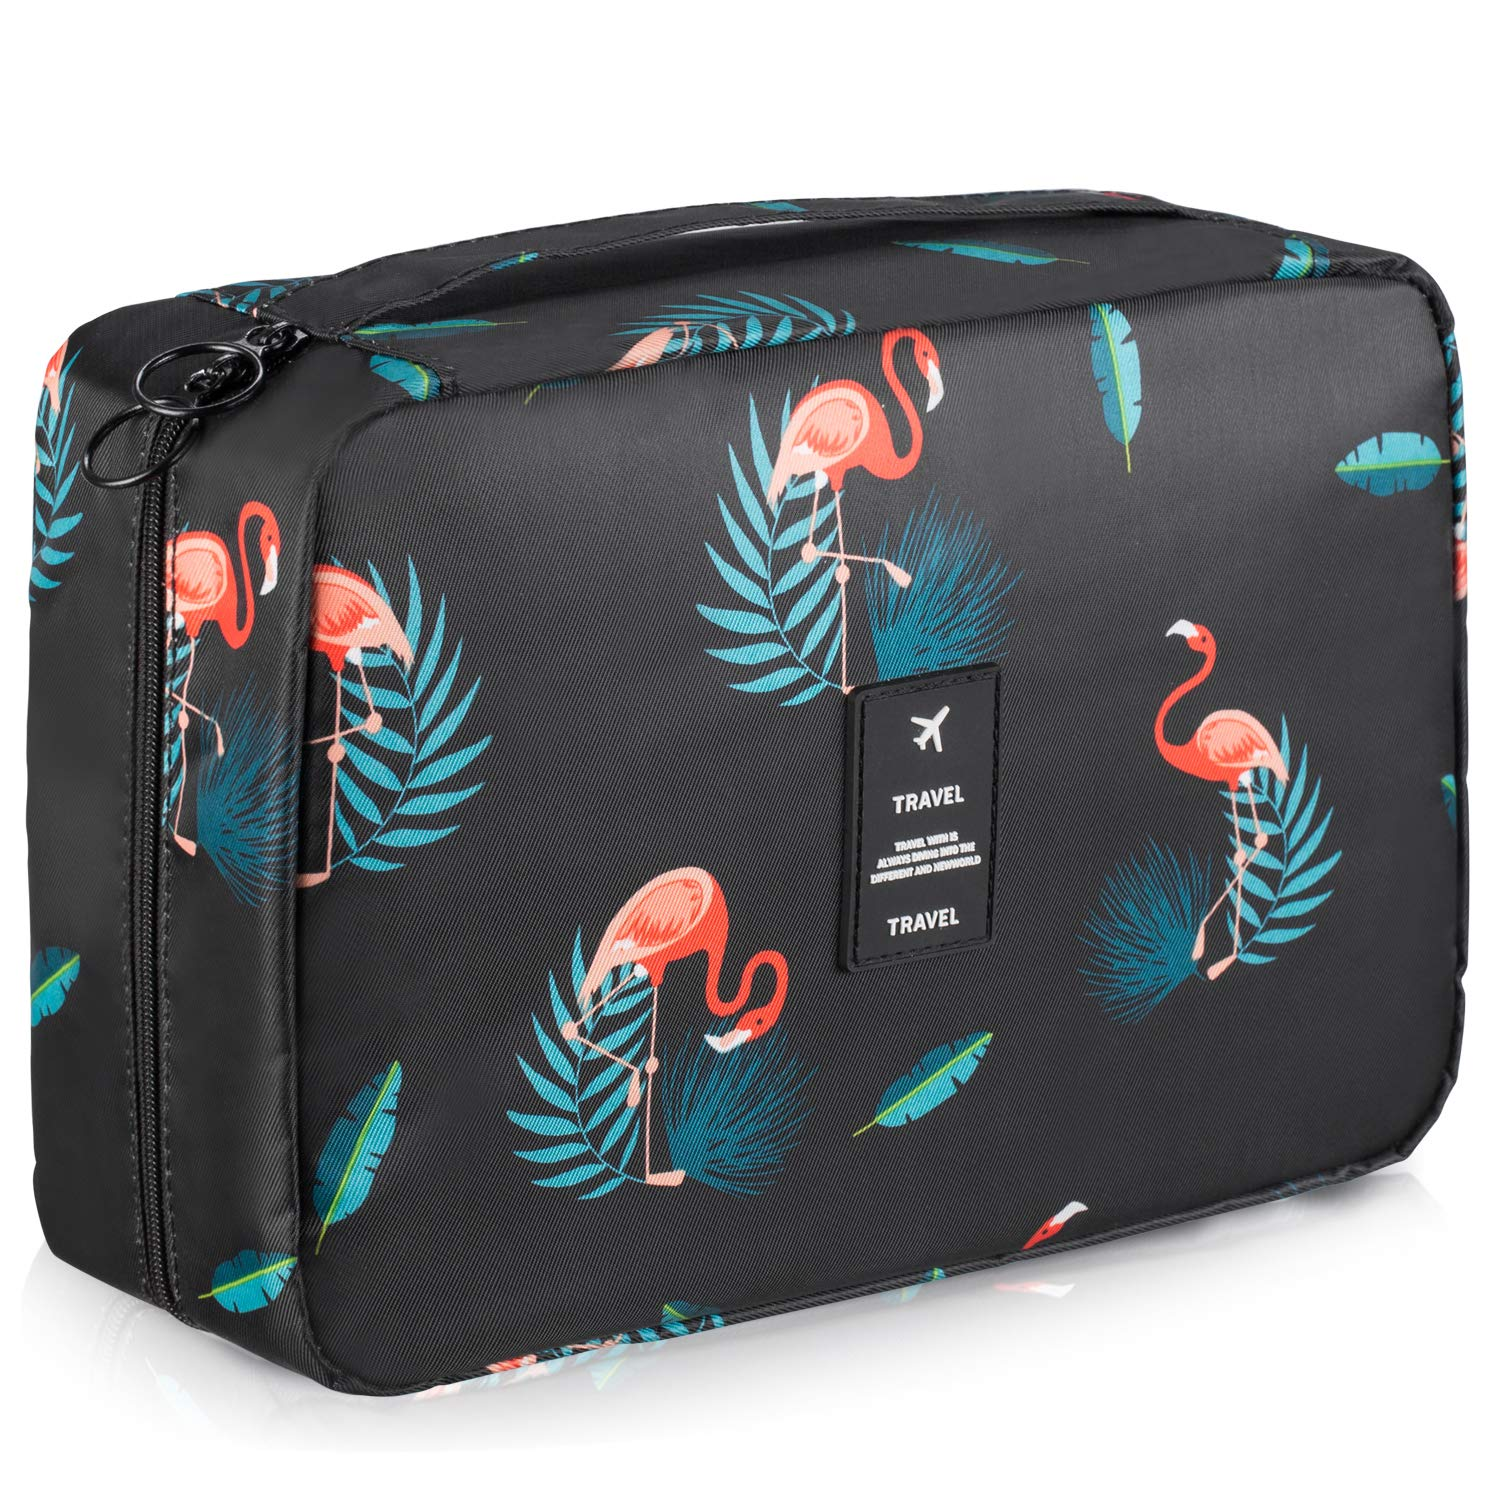 BOOEEN Travel Toiletry Bag, Waterproof Hanging Travel Bags, Toiletry Bag for Women and Girls Black